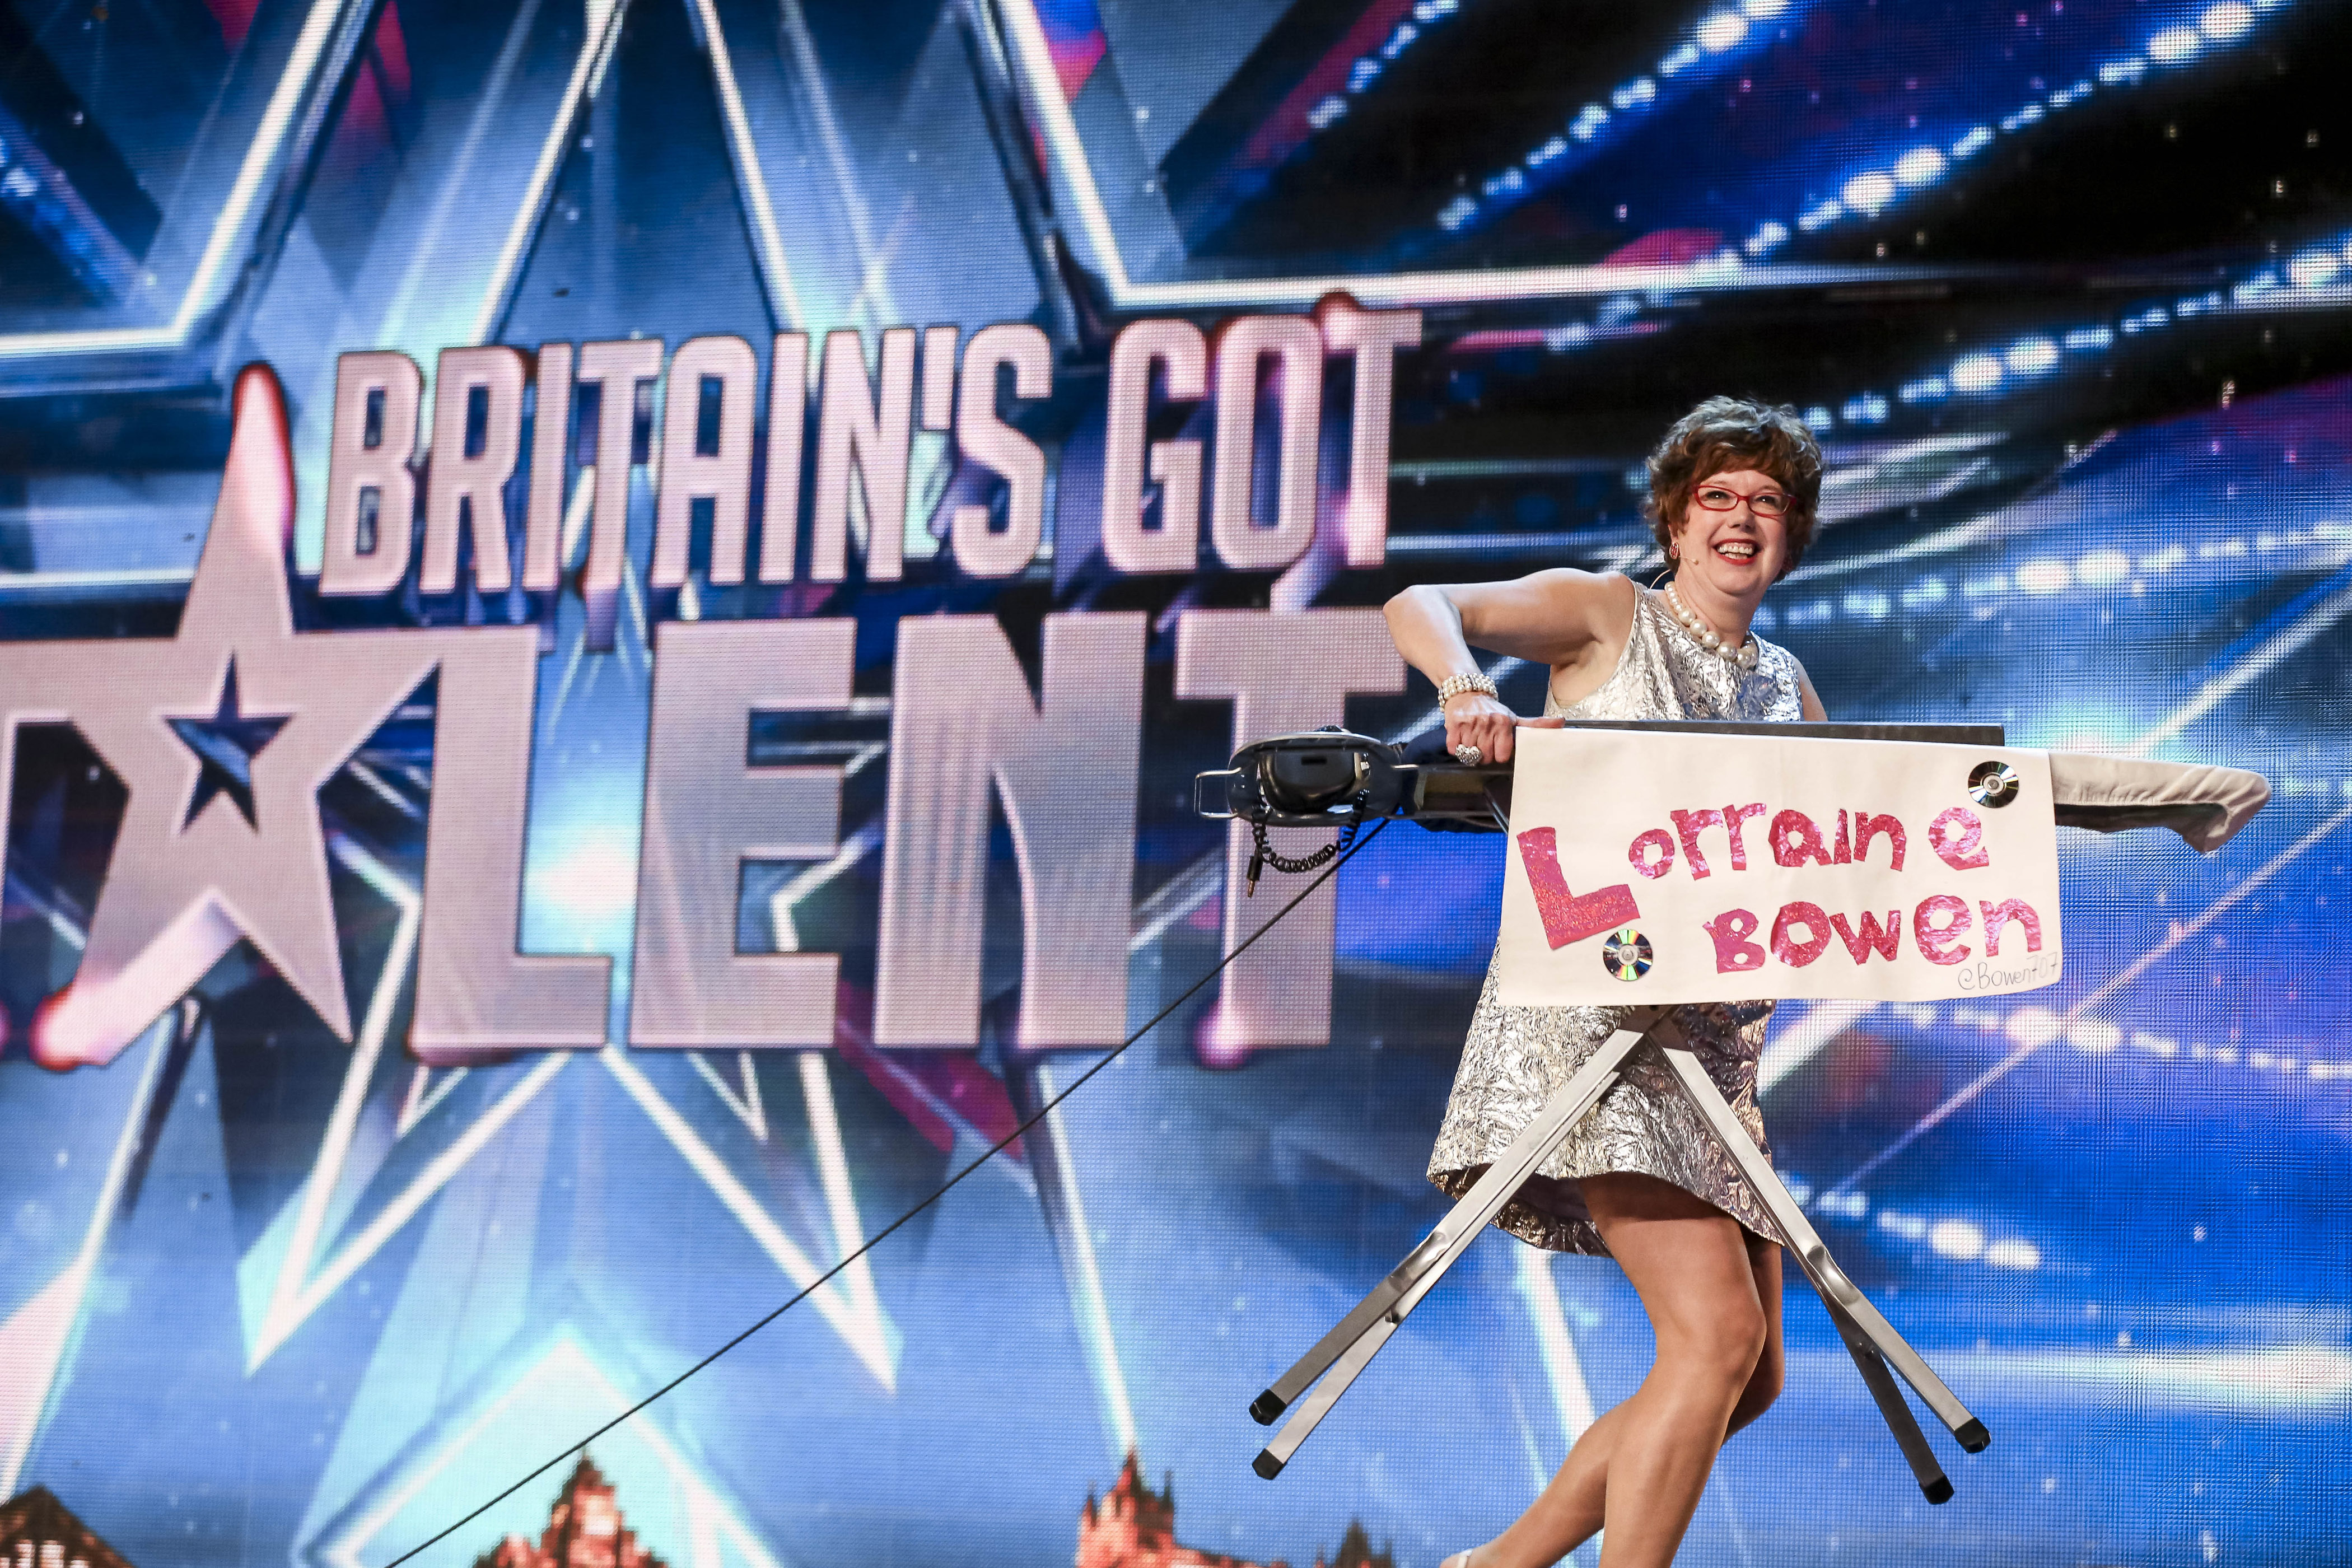 BGT: Your guide to the semi-finalists